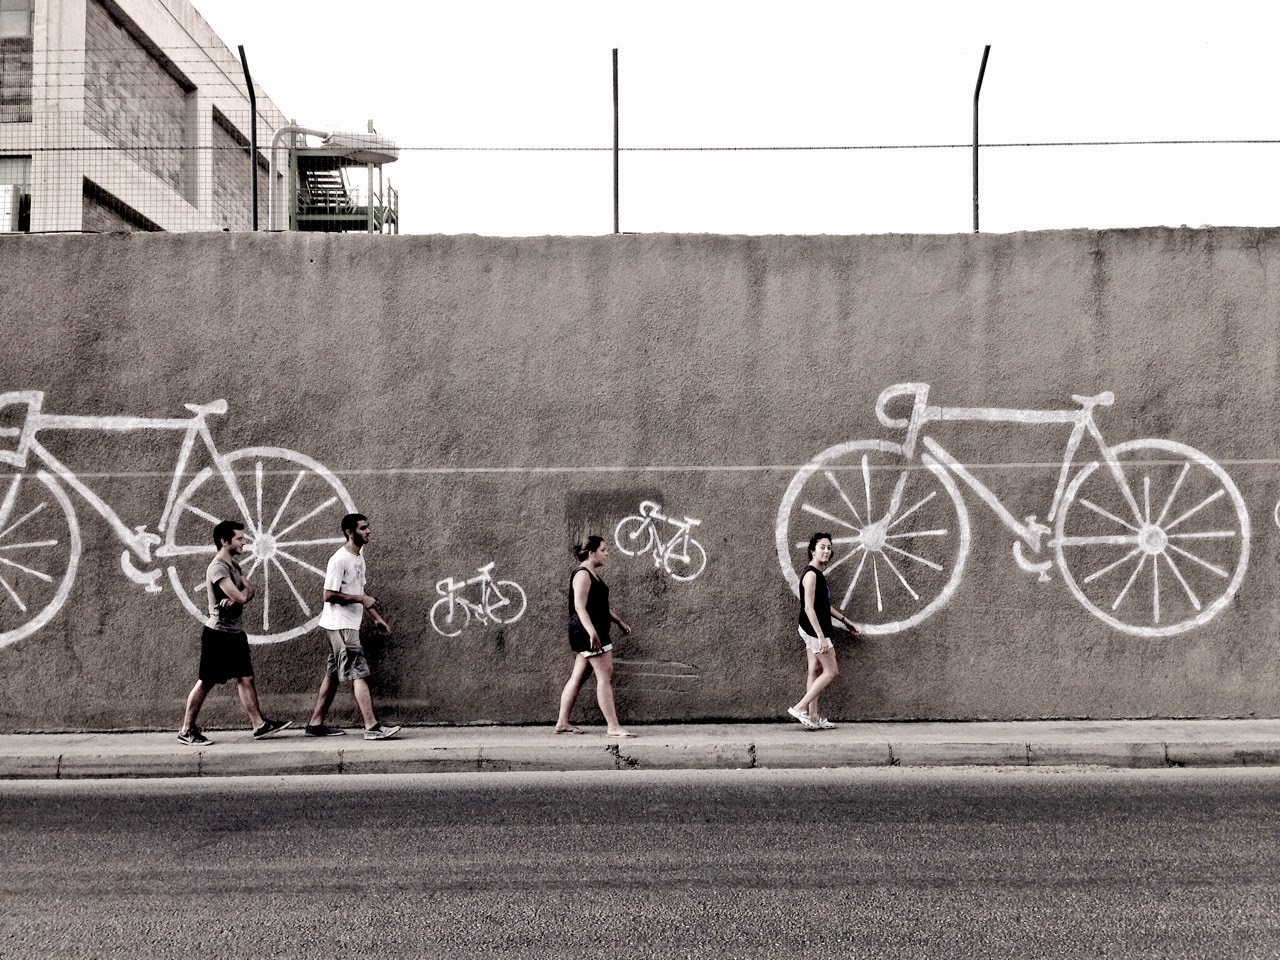 Witty Beirut street art urges you to ride your bike / The Chain Effect / Bananapook